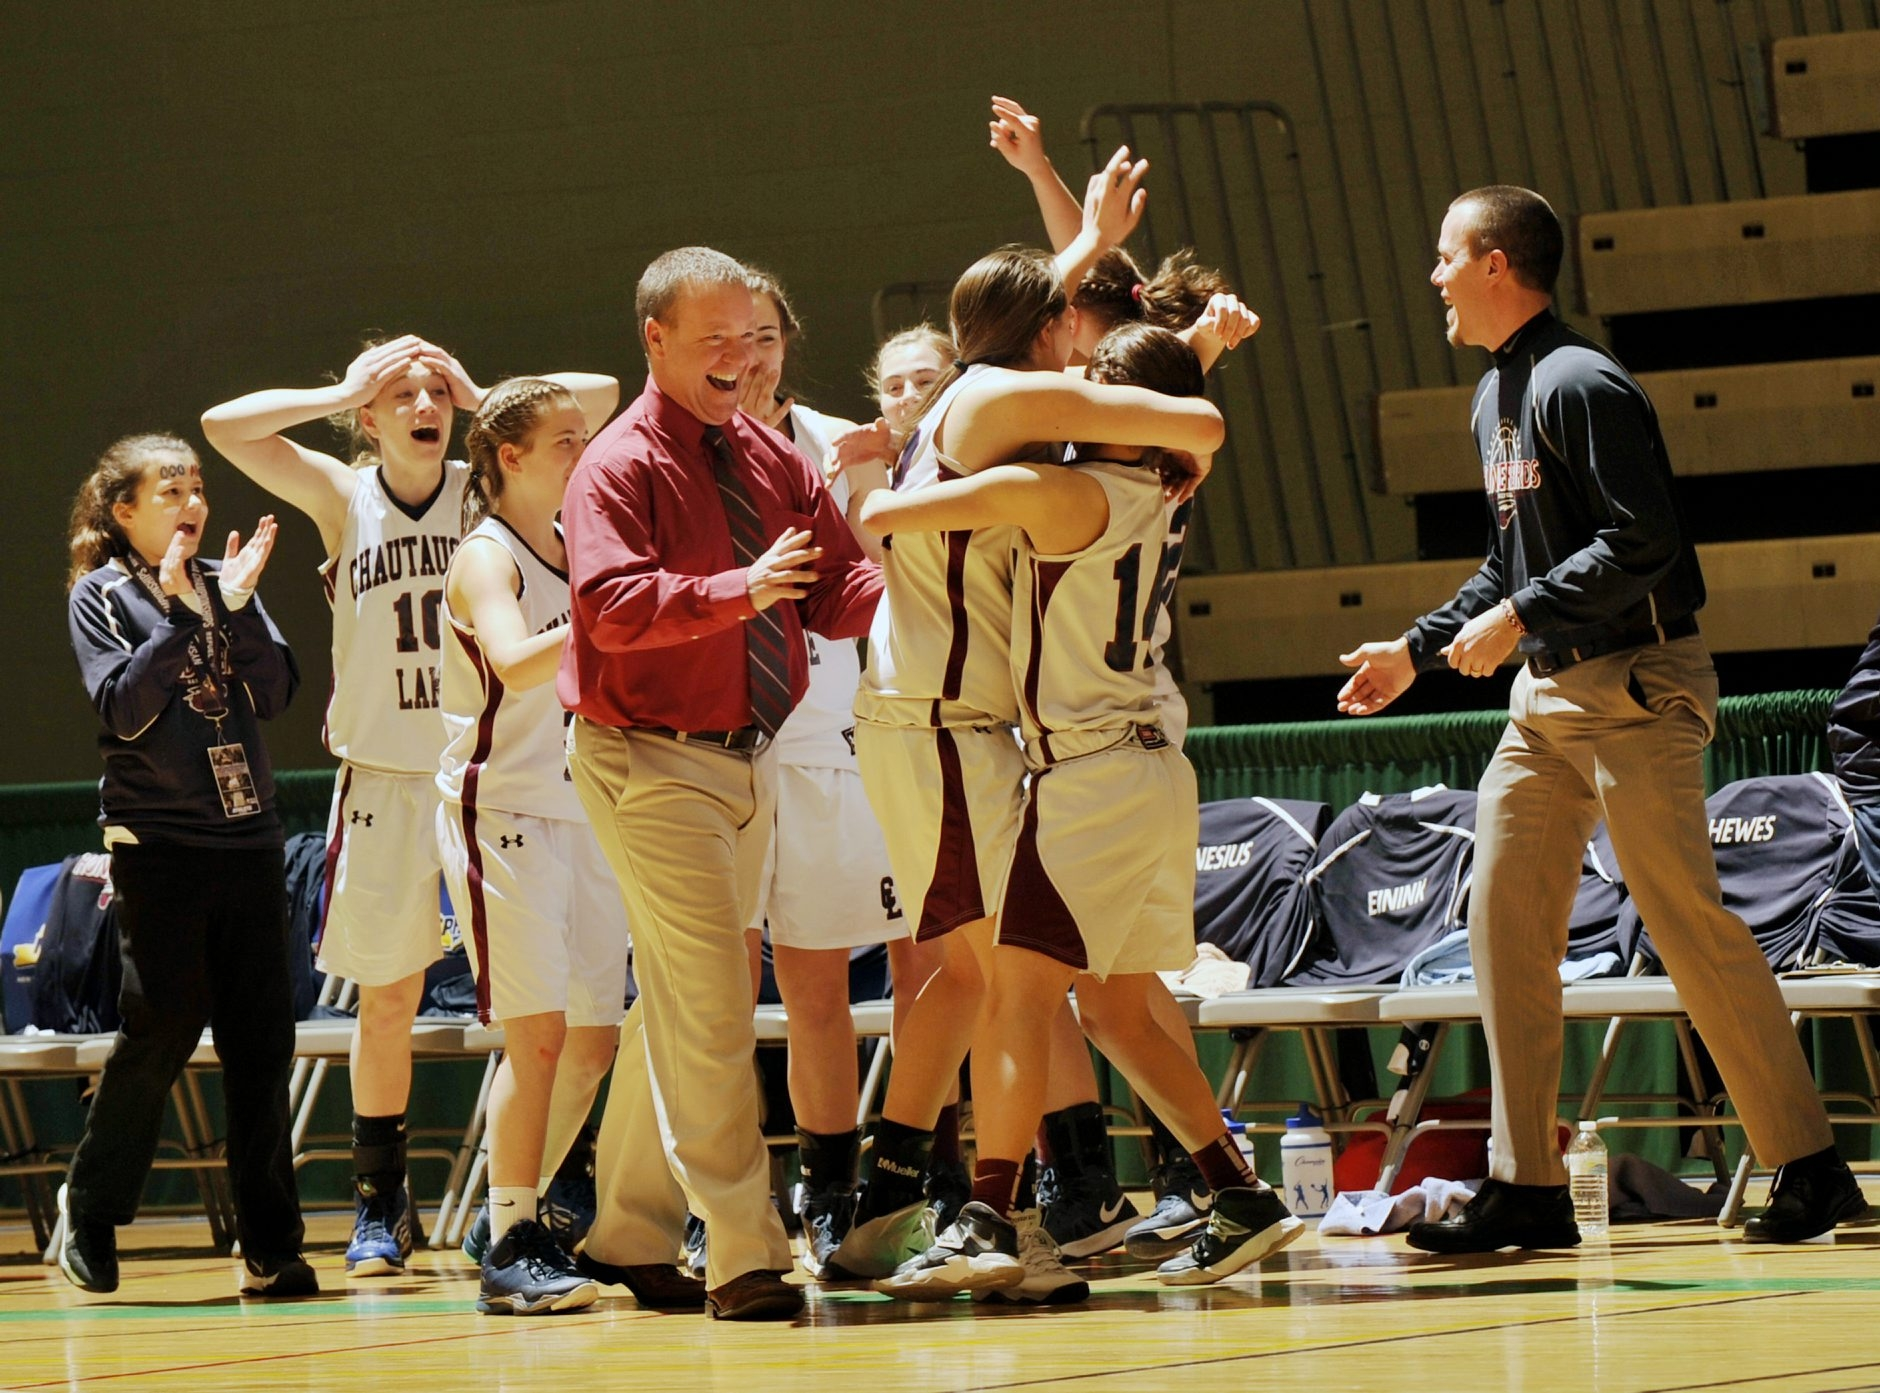 Chautauqua Lake players celebrated their 47-36 win against Hoosic Valley in the New York State Public High School Athletic Association girls Class C championship game on March 16.